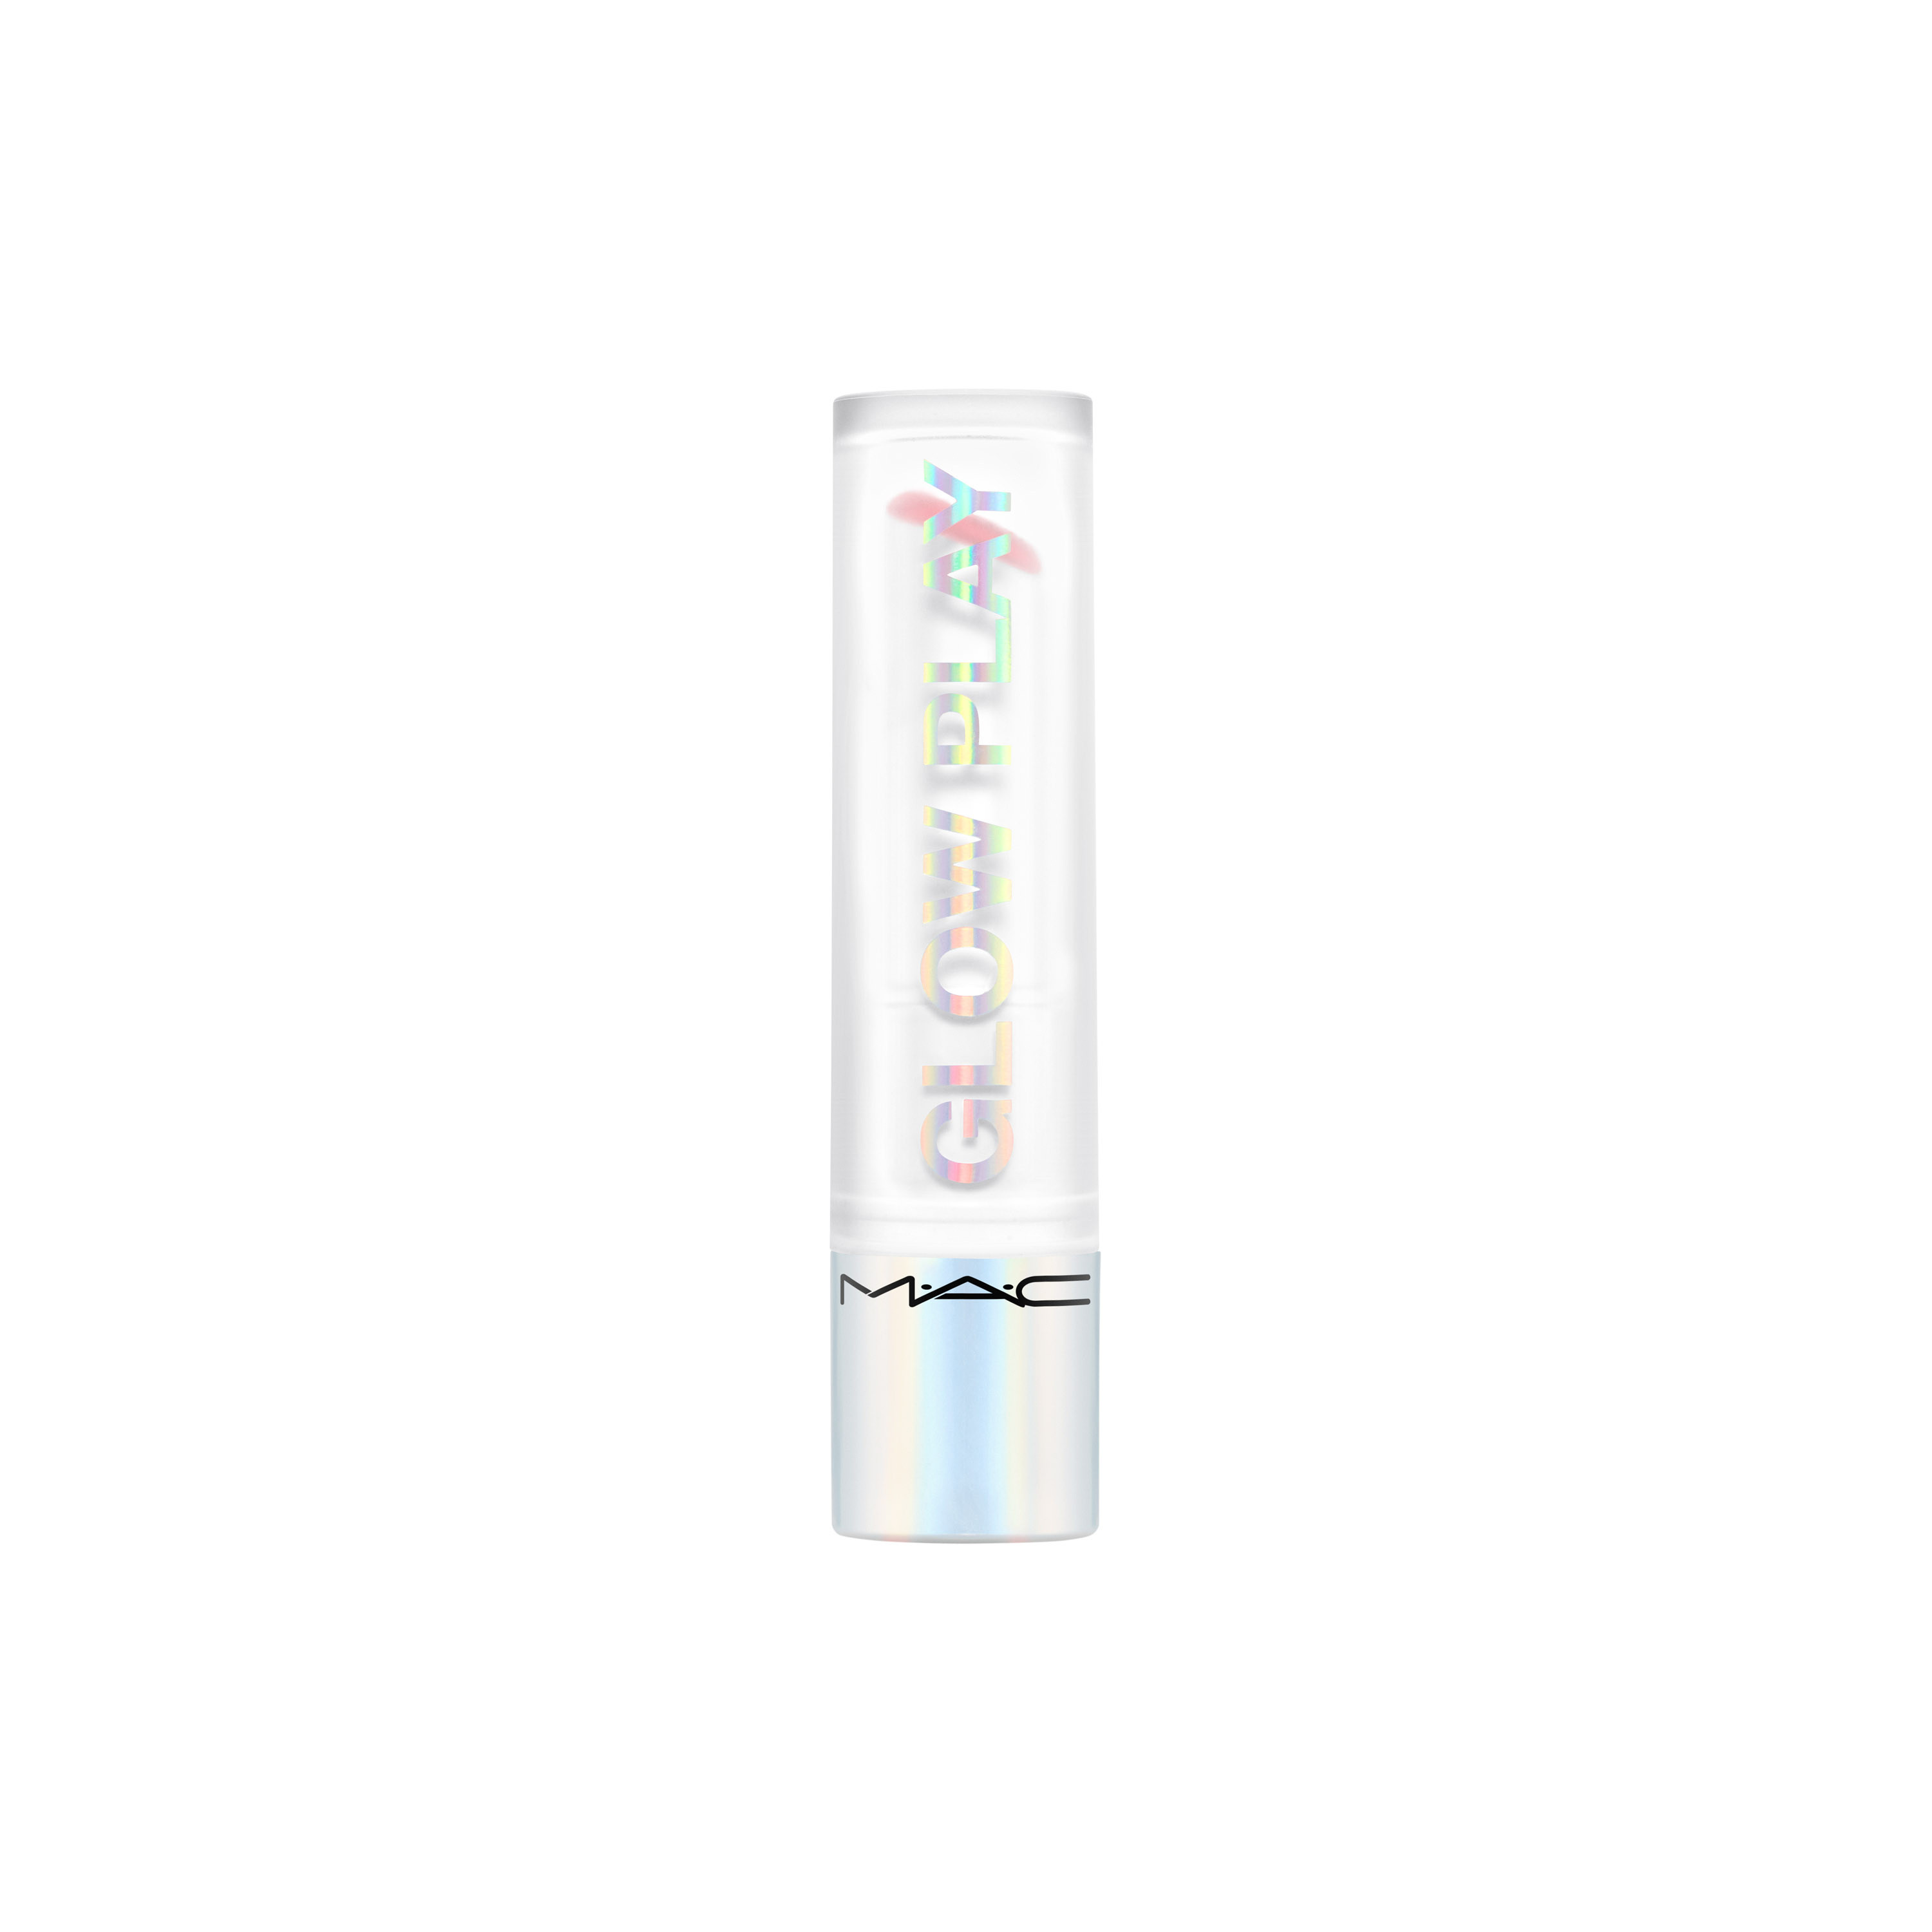 Glow Play Lip Balm - Floral Coral, FLORAL CORAL, large image number 1